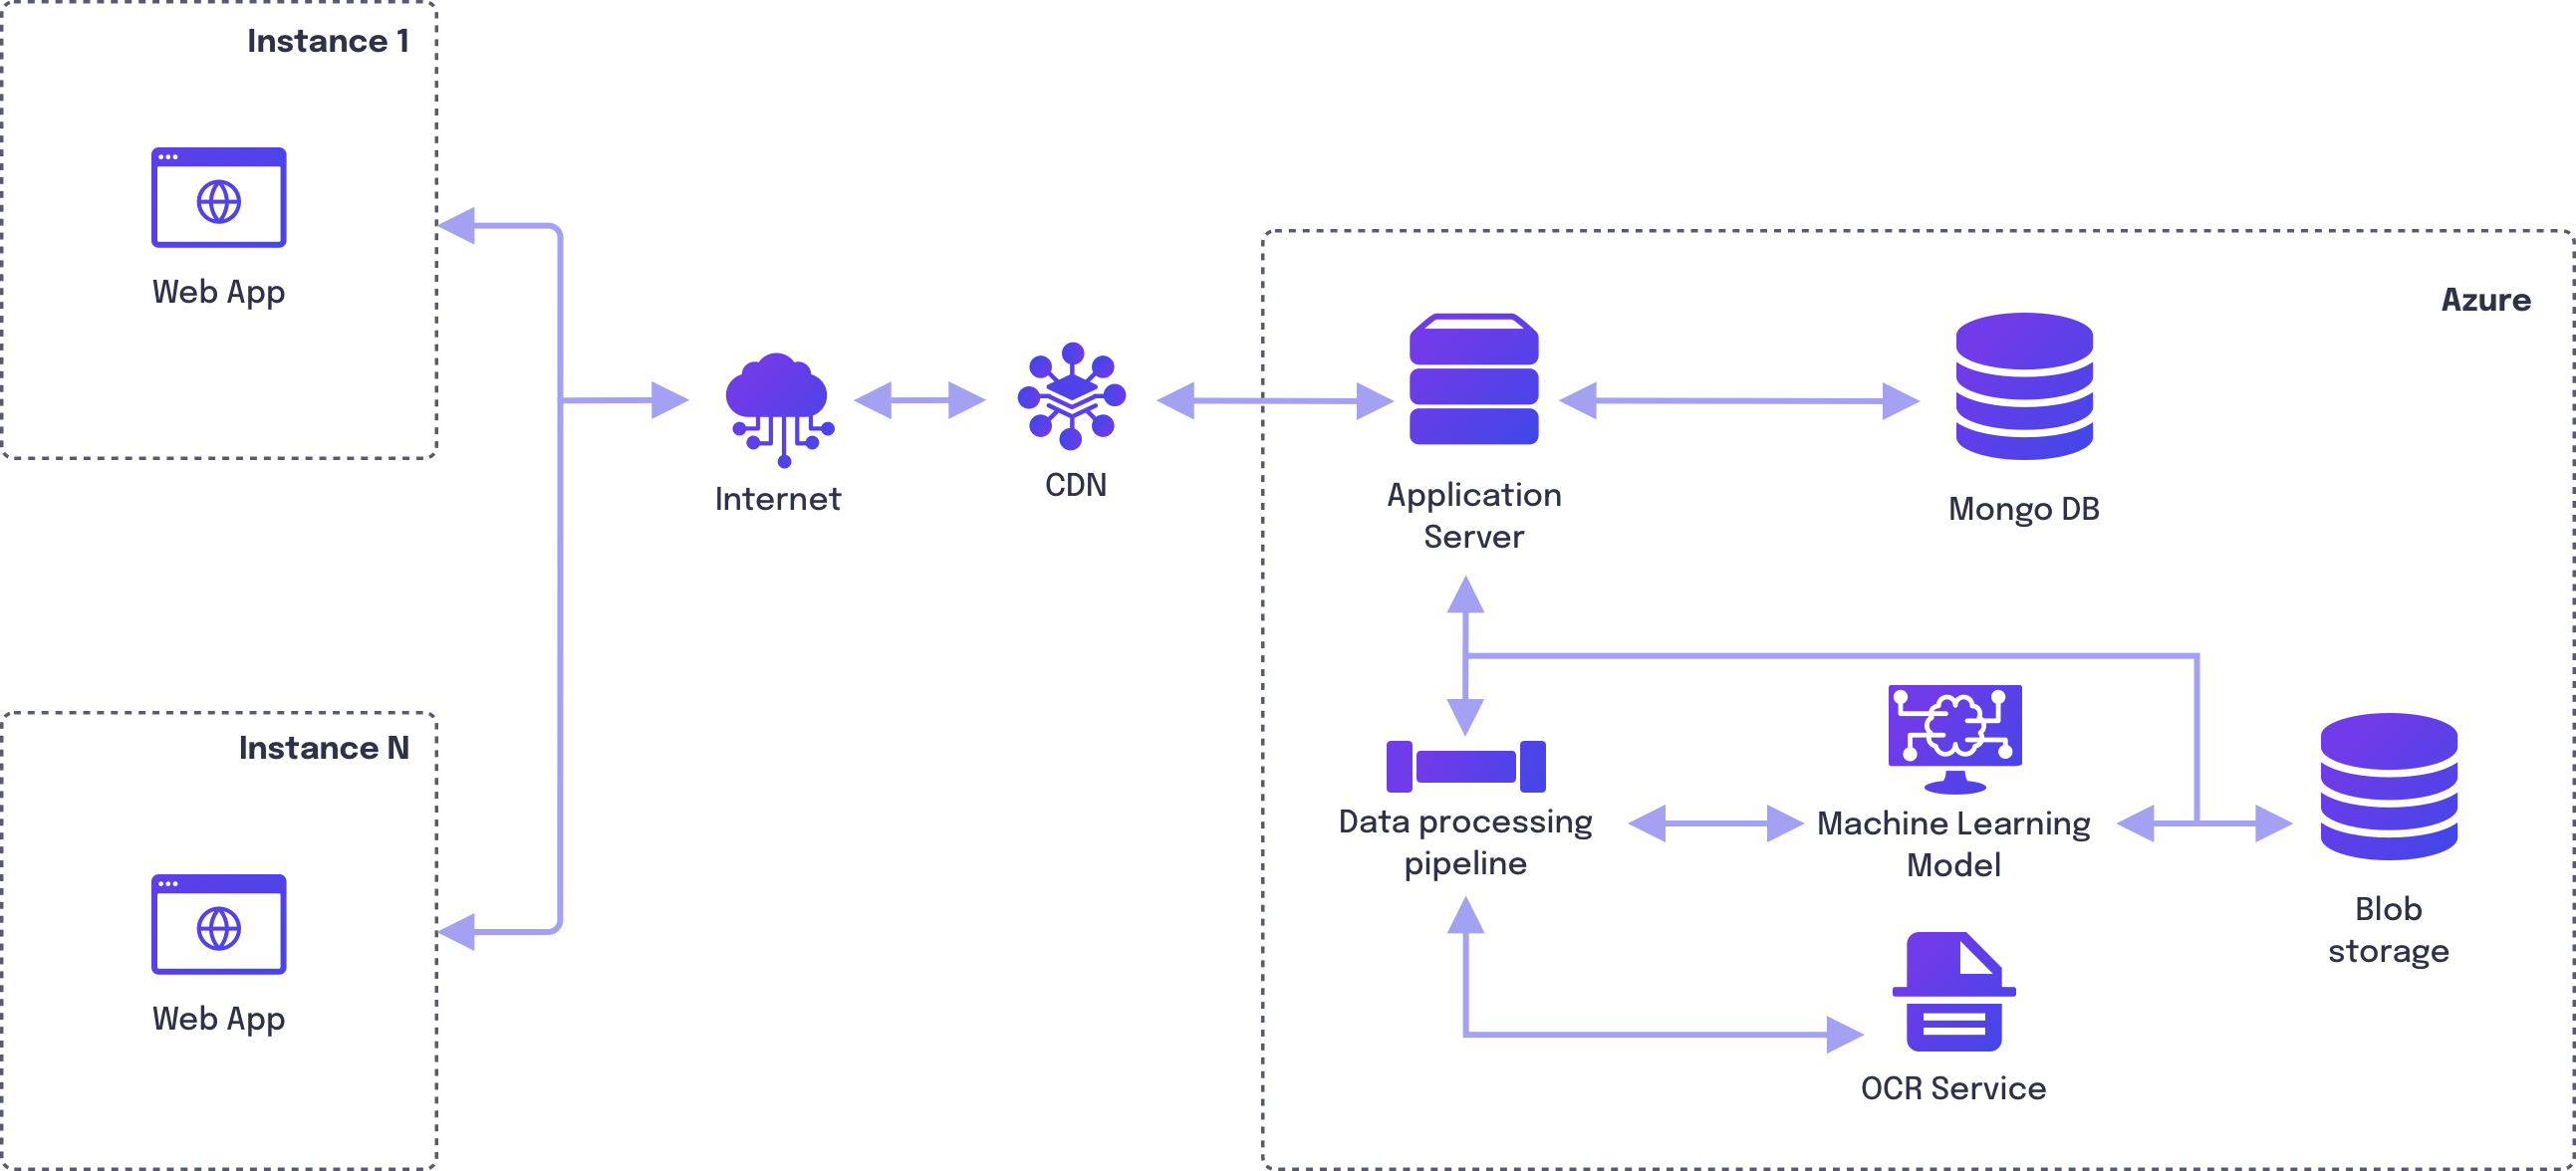 System Architecture diagram of a document intelligence platform for rental contracts